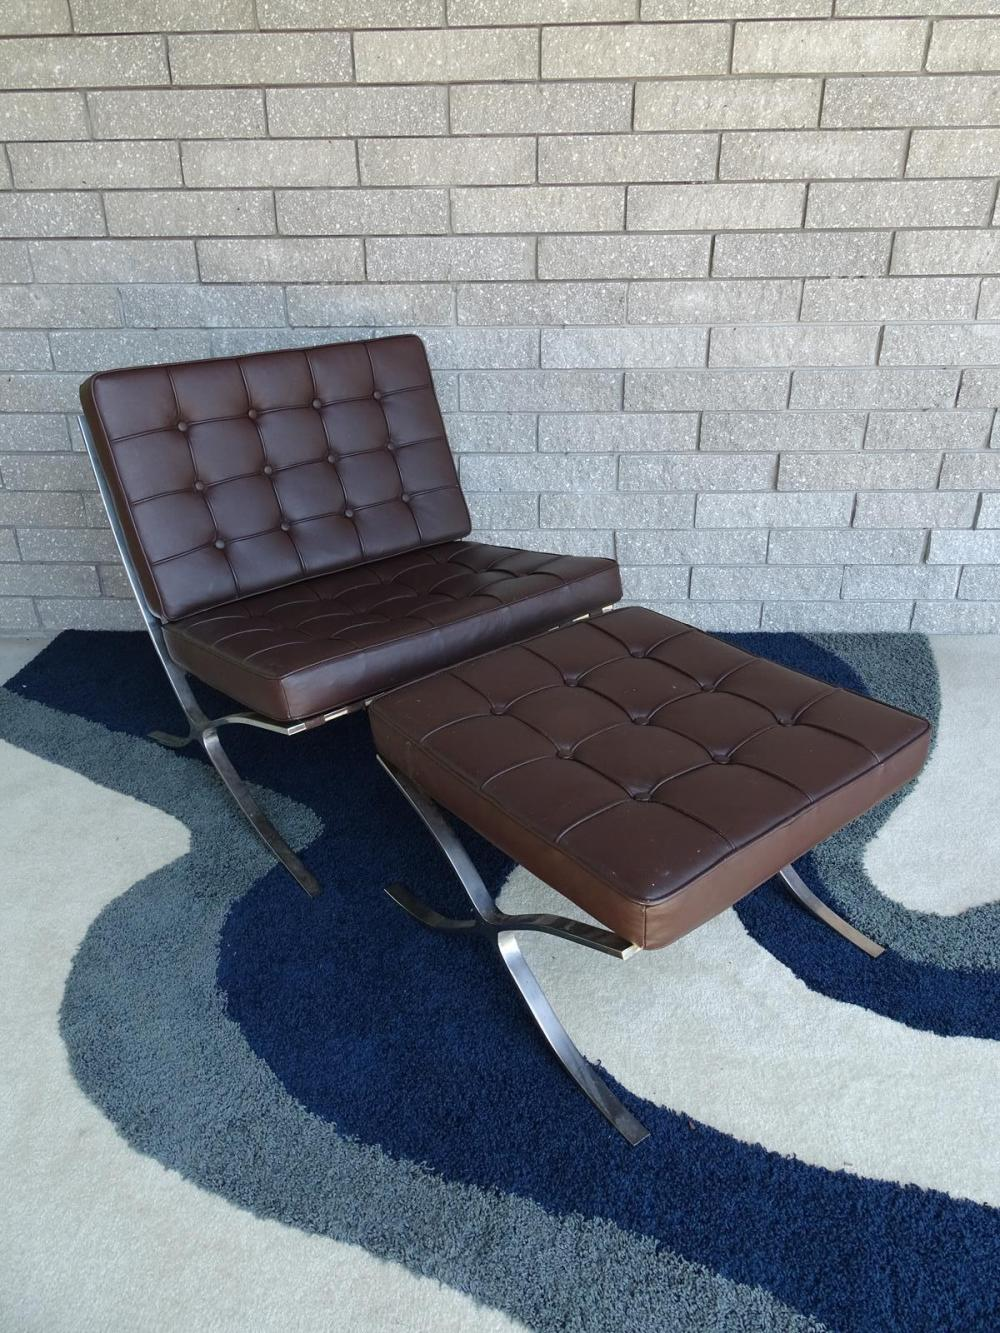 BARCELONA STYLE LOUNGE CHAIR AND OTTOMAN